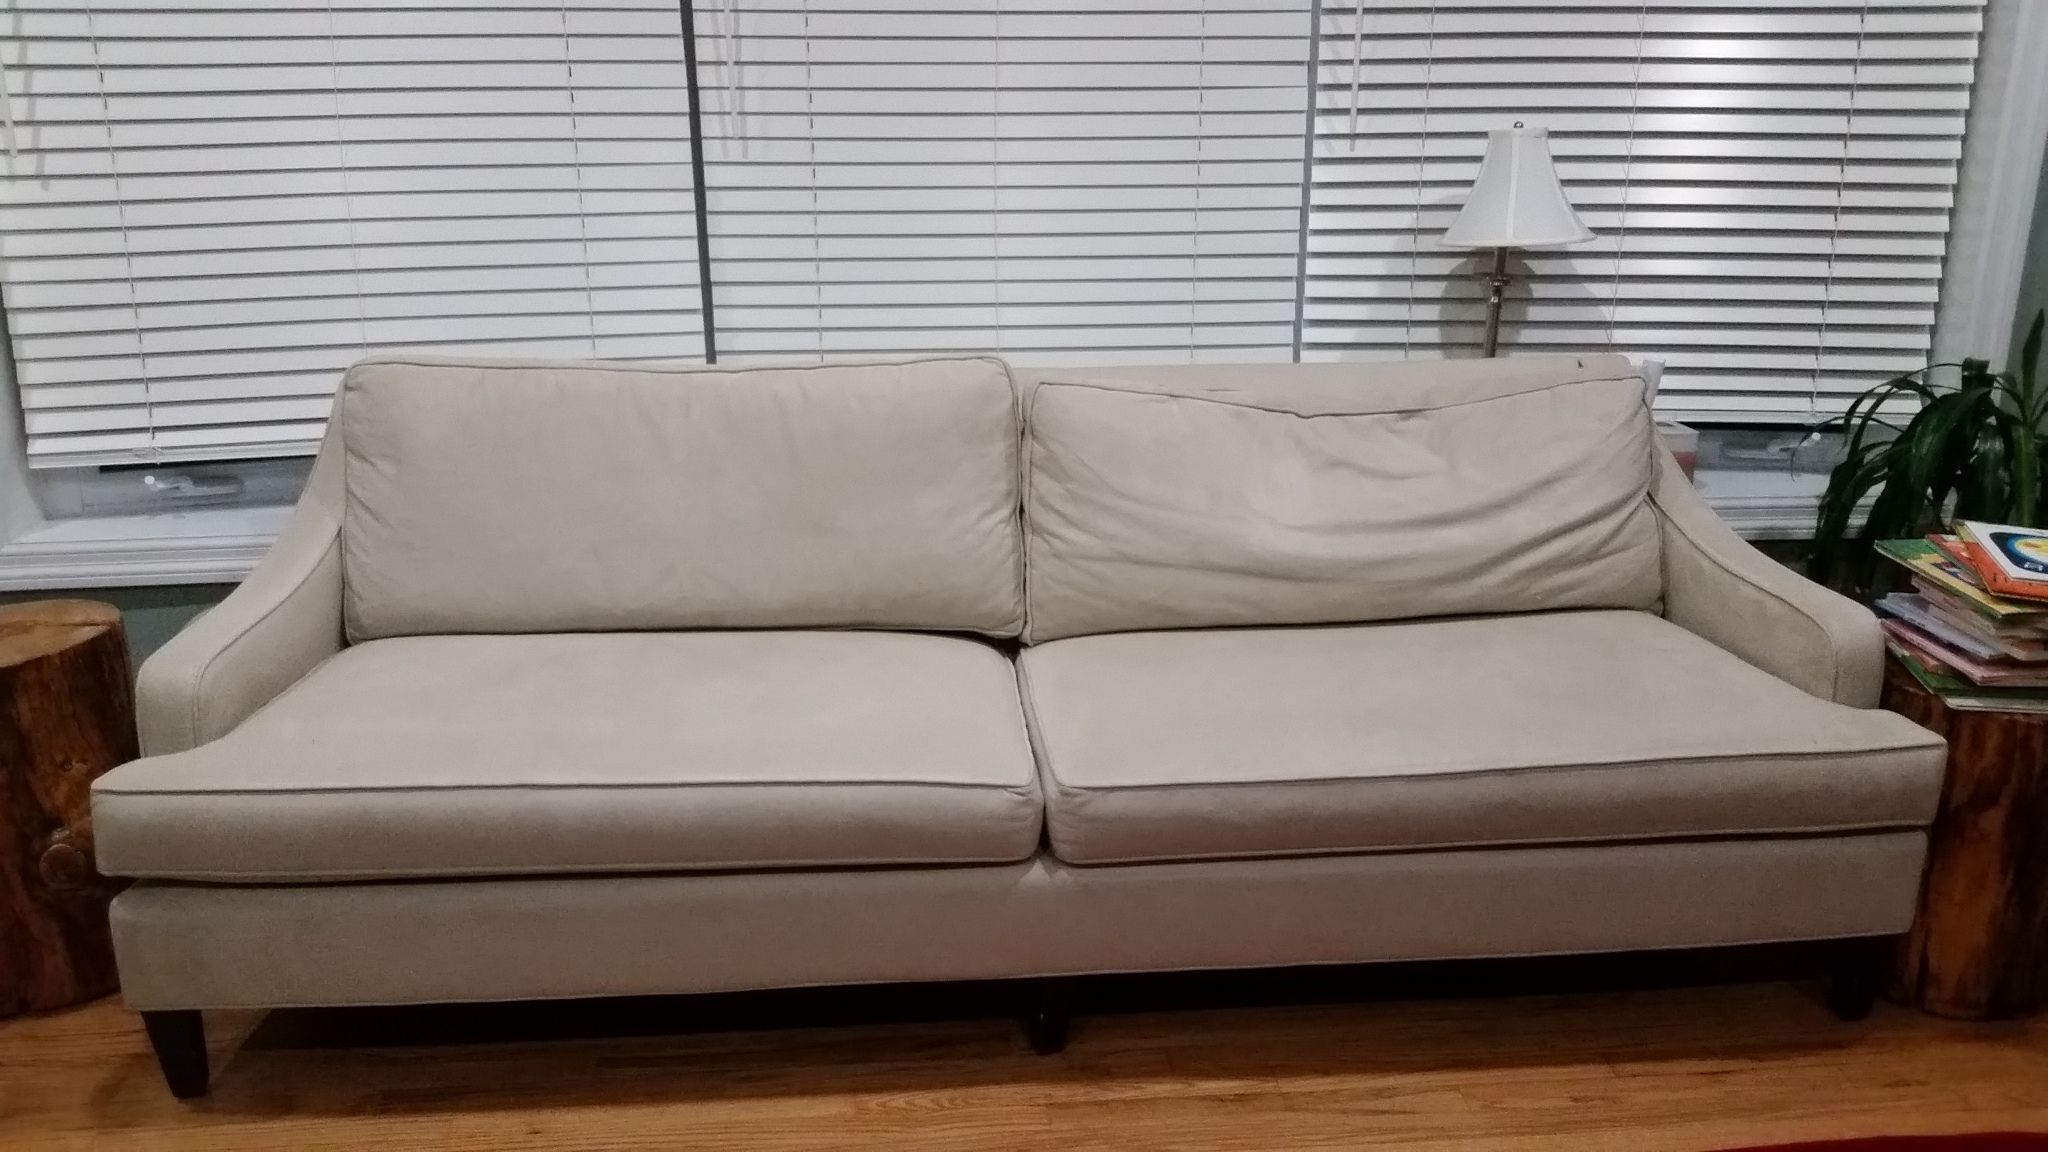 """PotteryBarn reviews. """"Overpriced sofa with a defect but"""